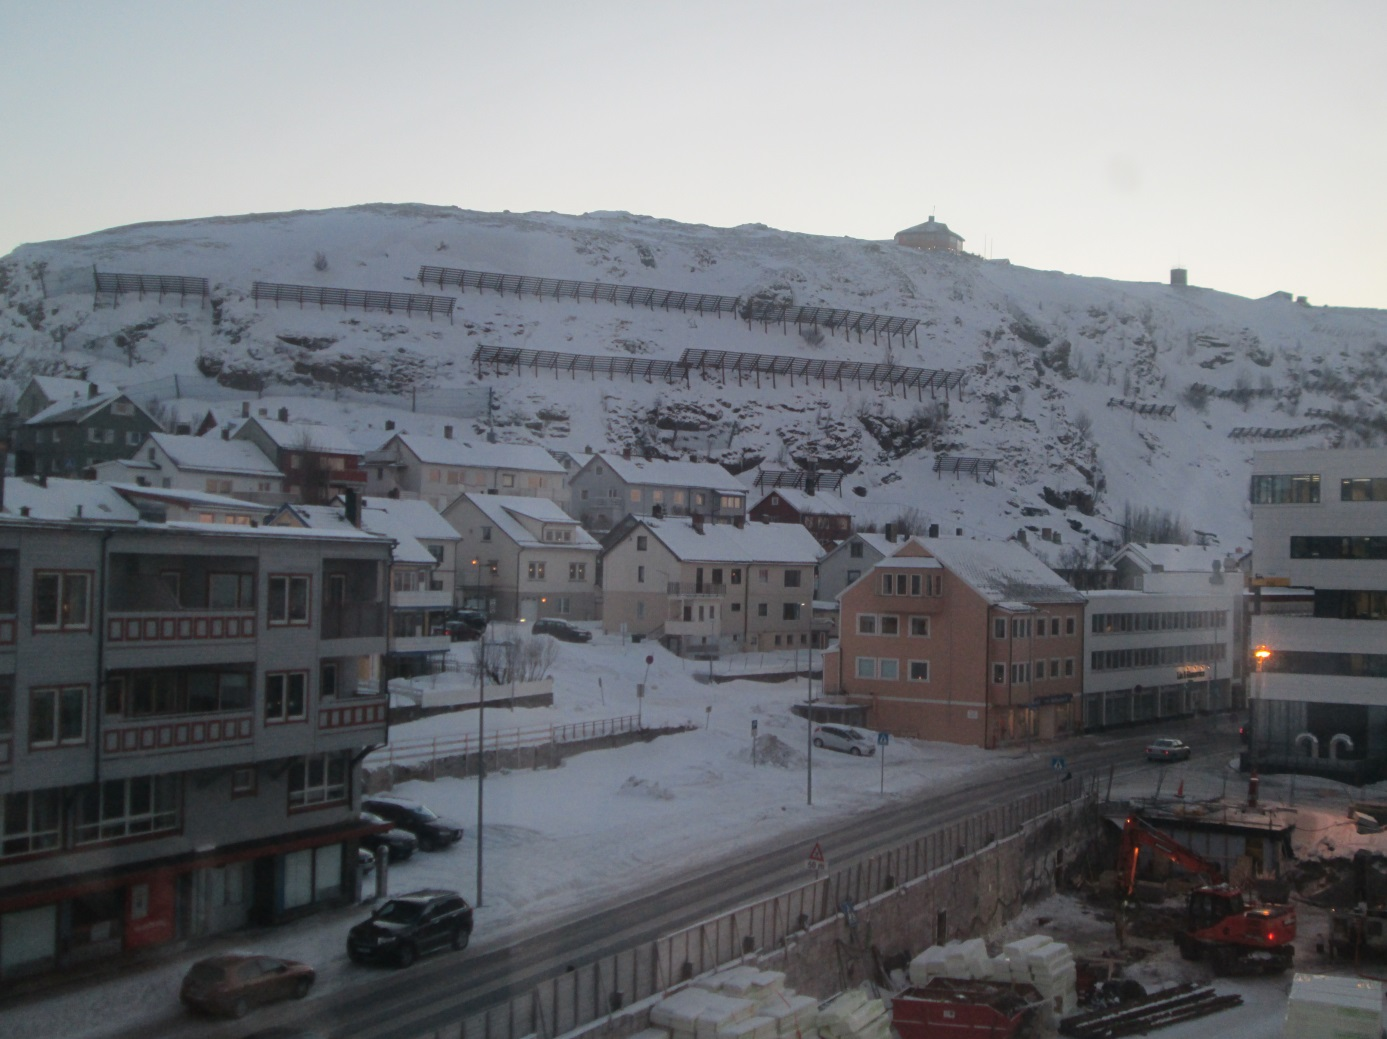 Photo: Ove Røeggen Hammerfest with the mountain Salen.  Salen is situated in the middle of the town, and one can see  snowfences that protect the town from avalanches.